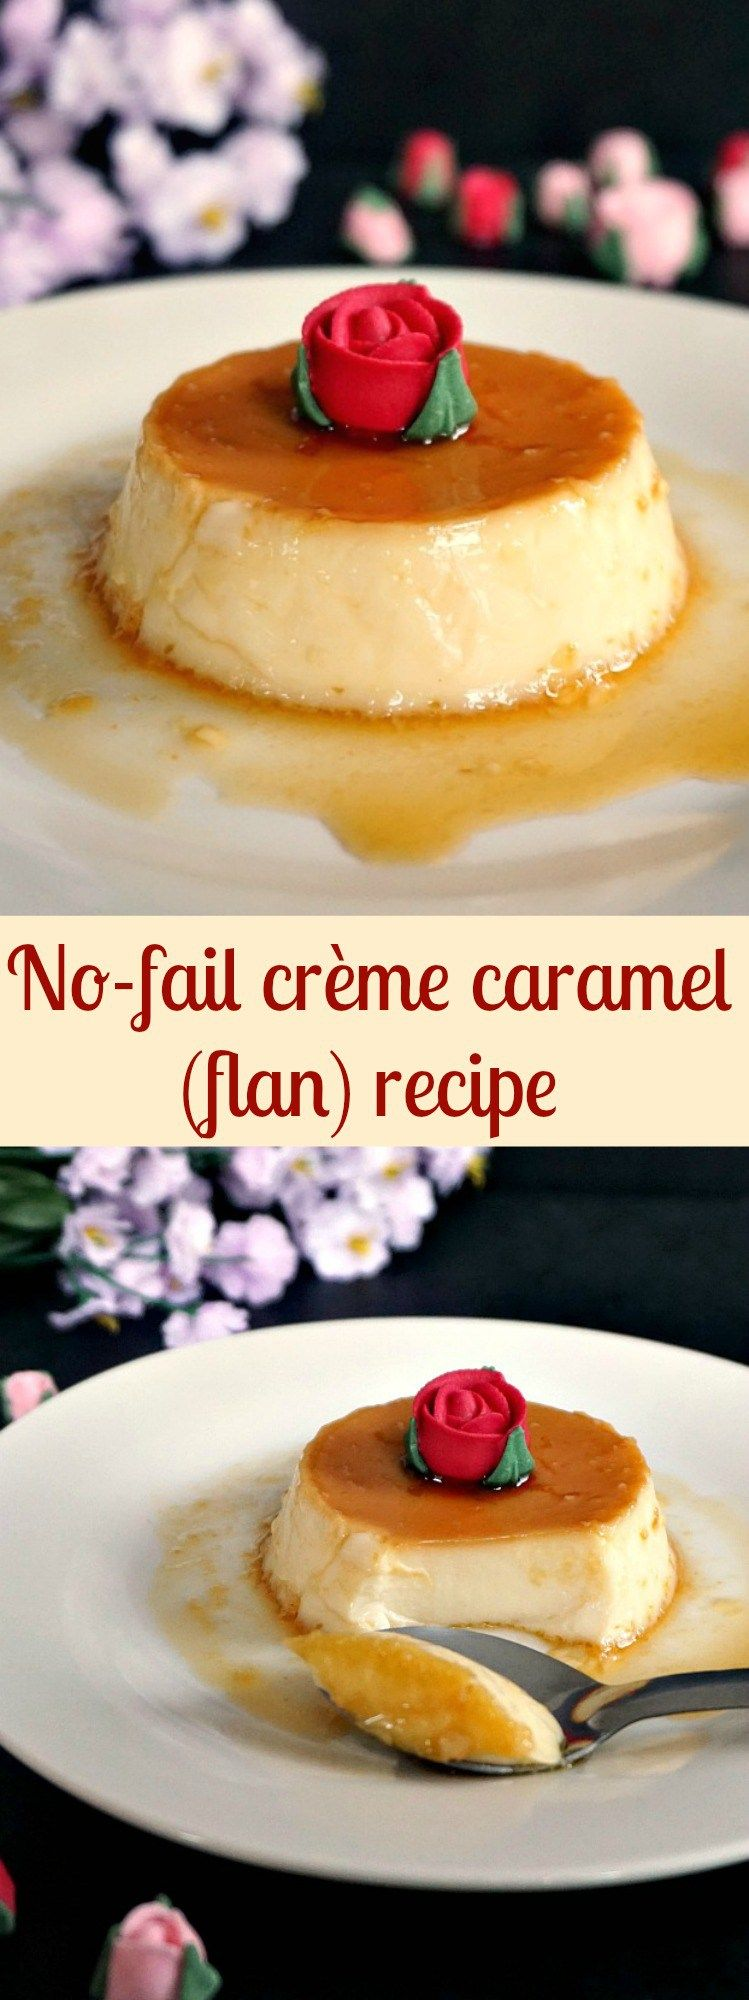 No Fail Creme Caramel Flan Recipe The Perfect Flourless Dessert For Valentine S Day Flan Recipe Caramel Flan Creamy Desserts